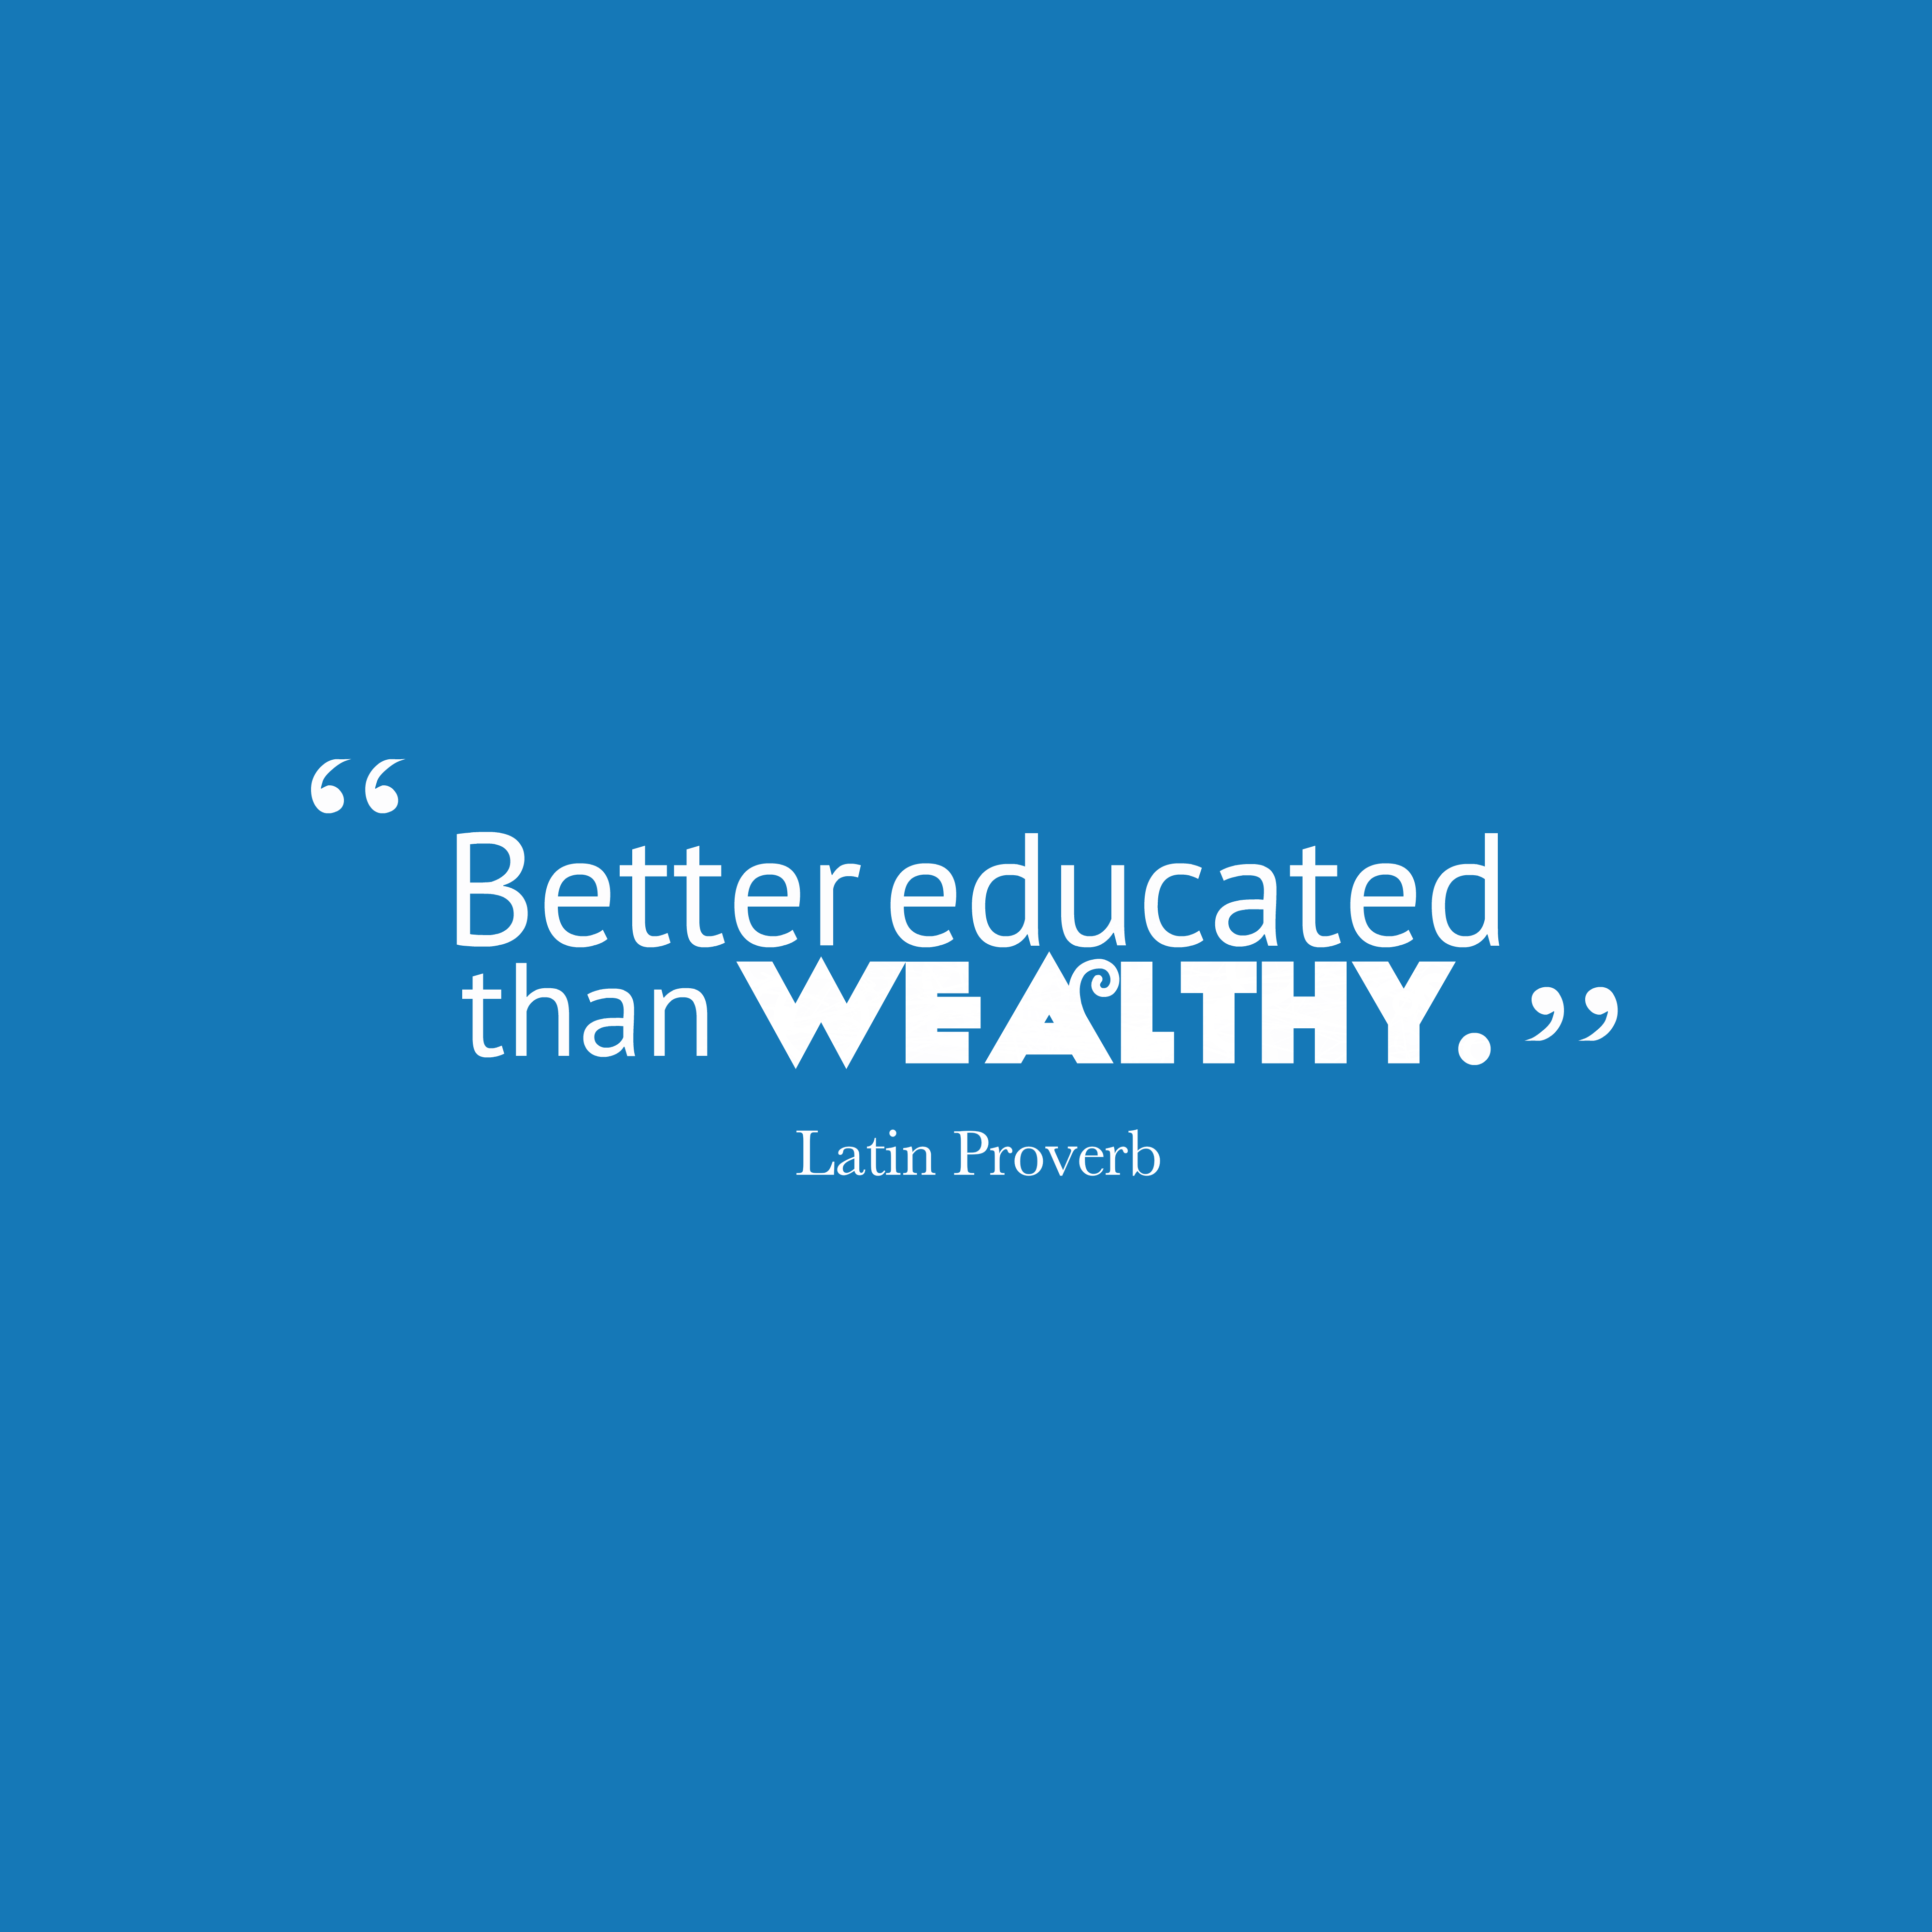 Quotes image of Better educated than wealthy.